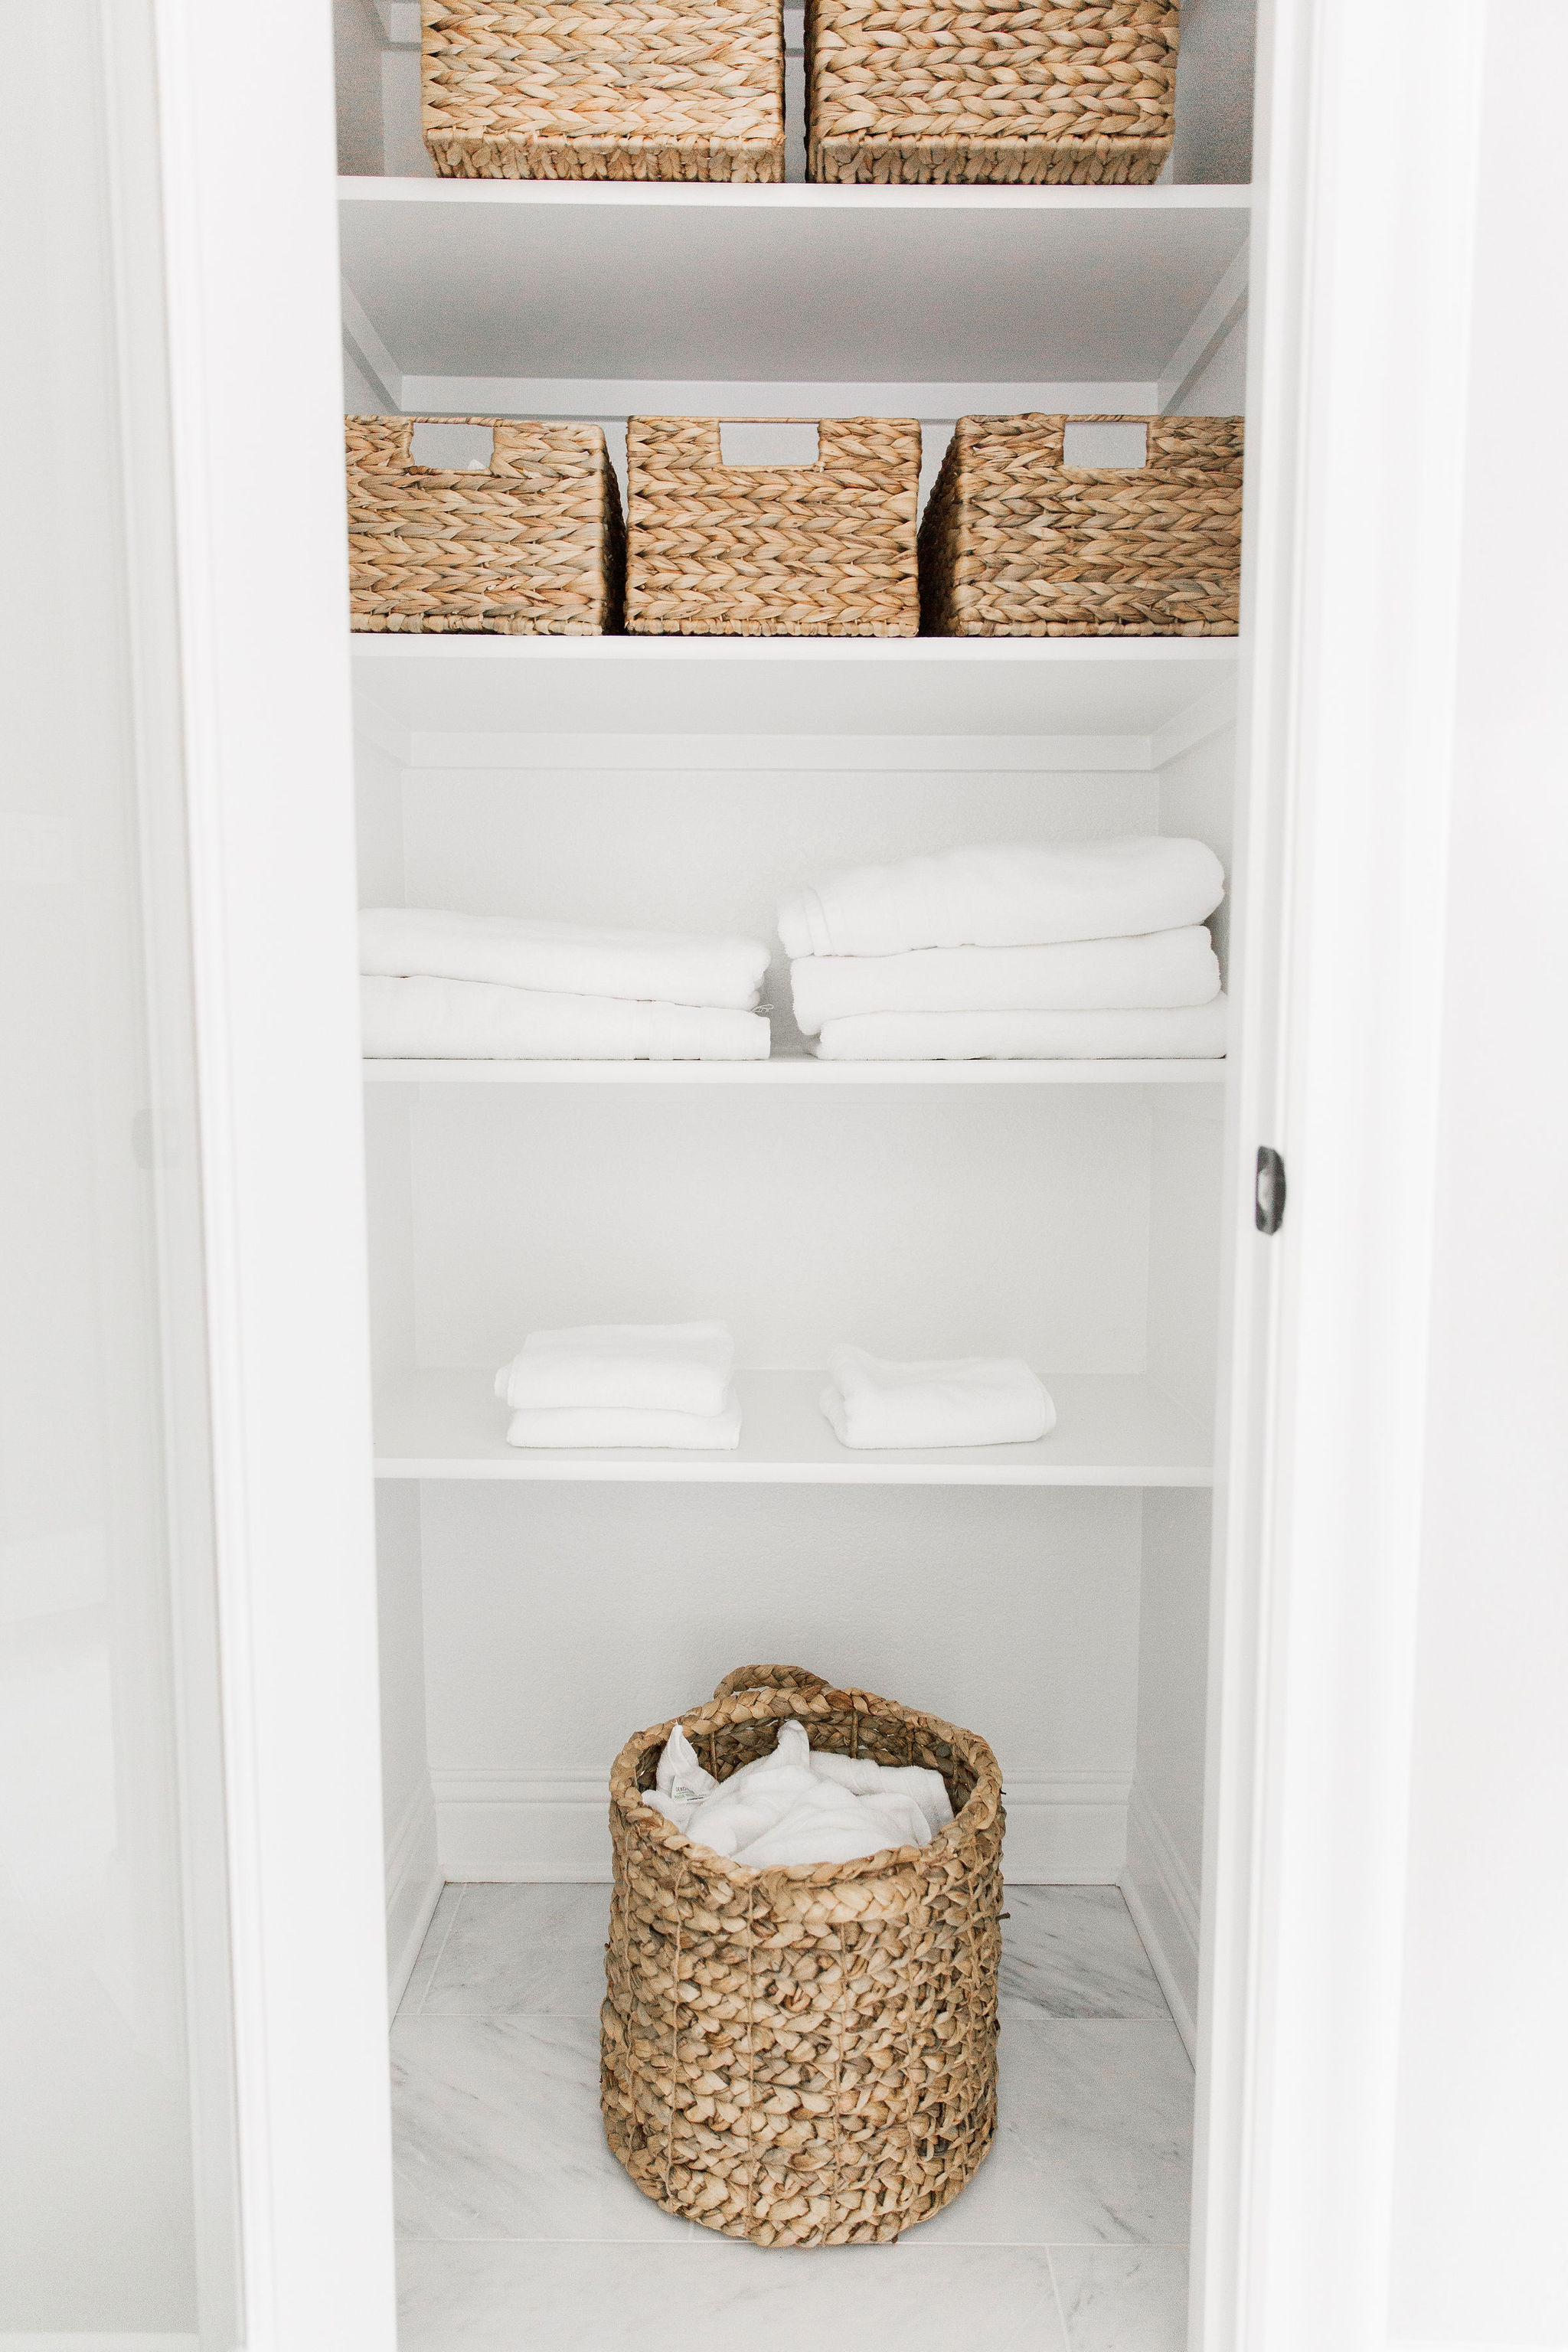 Bathroom styling with baskets and white